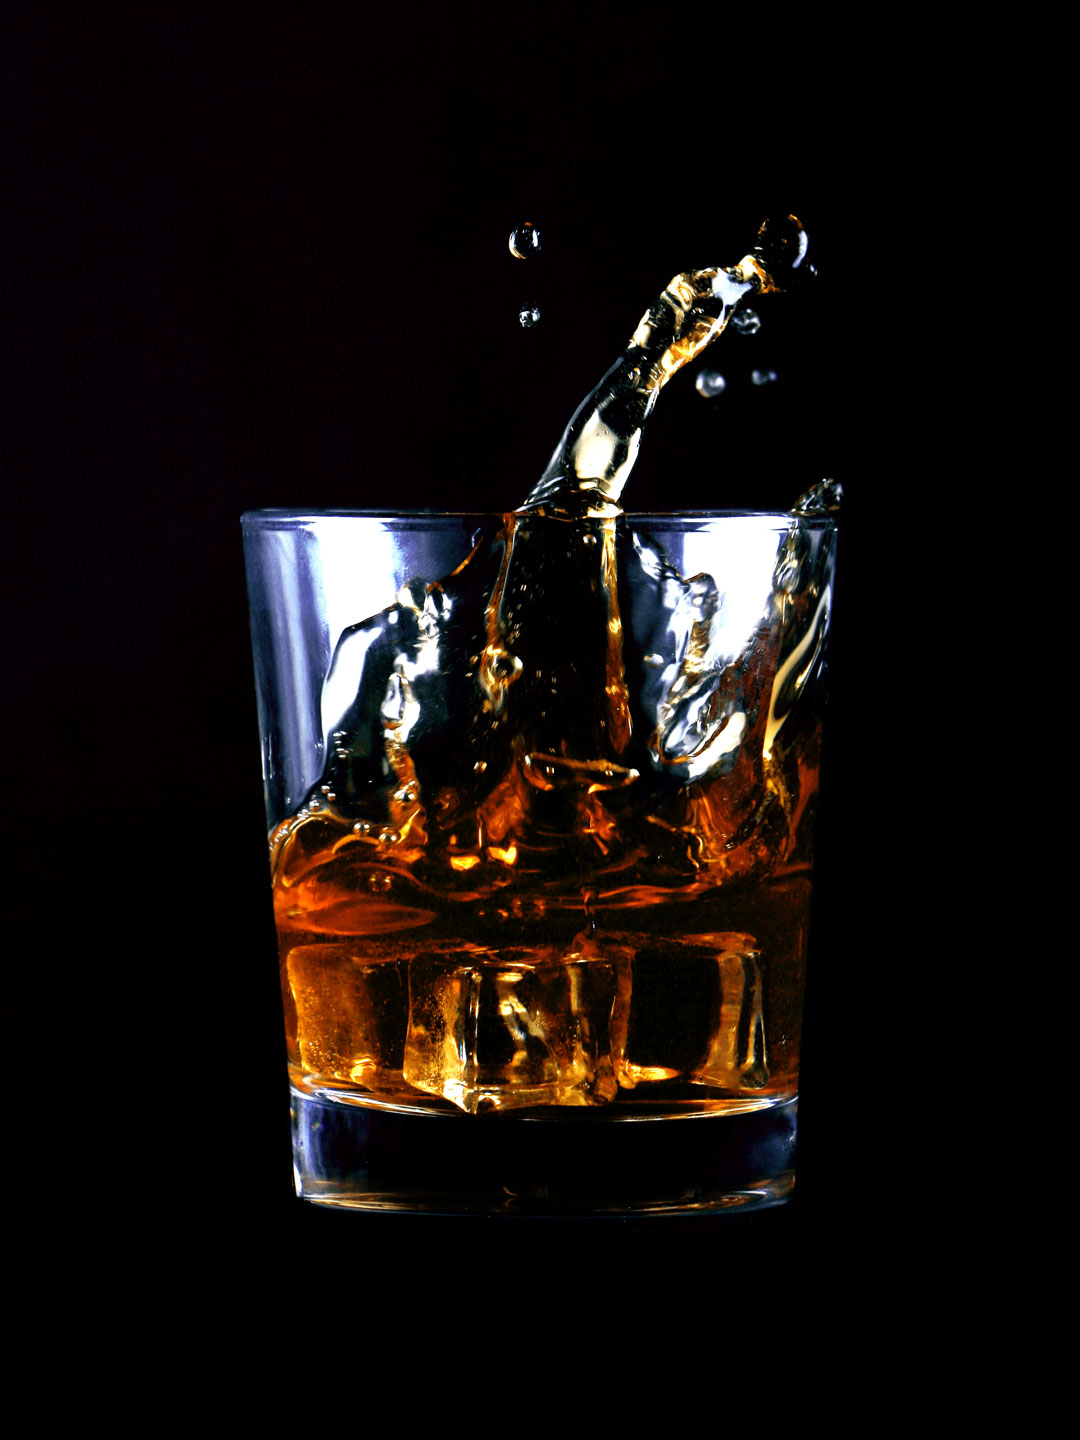 French Photographer Paris Studio Packshot Food Photography Storm in a whiskey glass